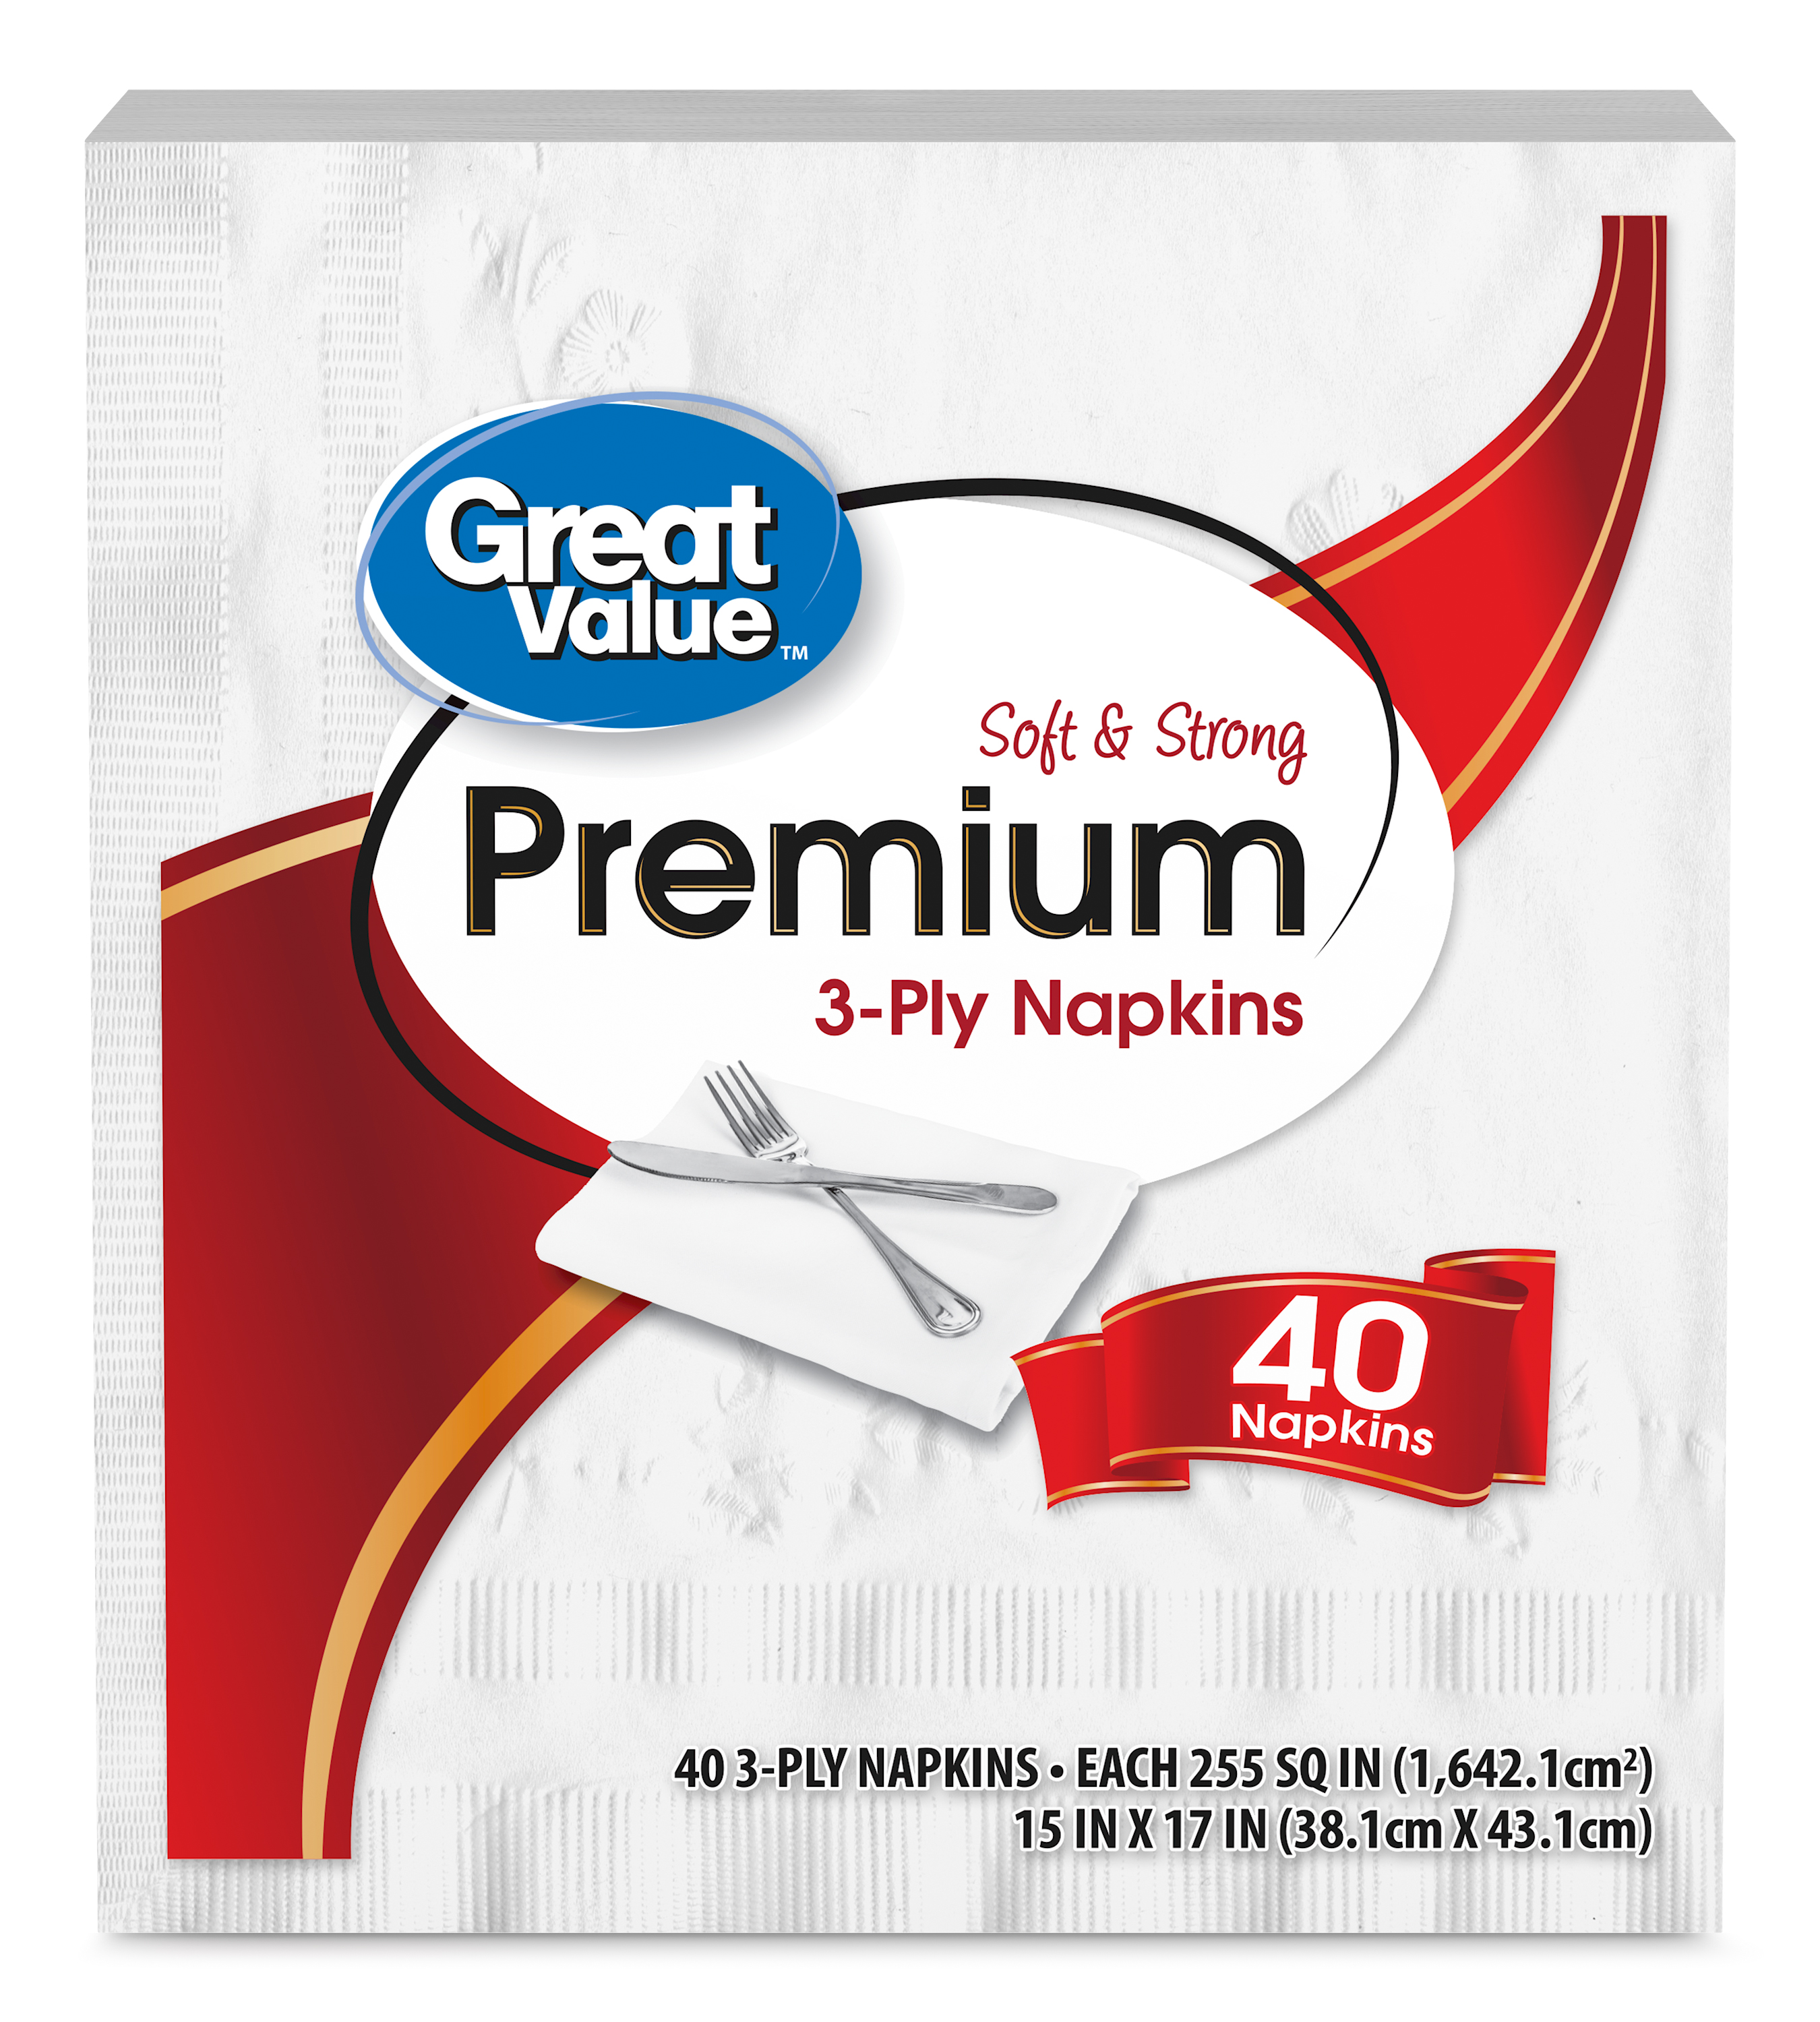 Great Value Premium Napkins, Soft & Strong, 40 Count